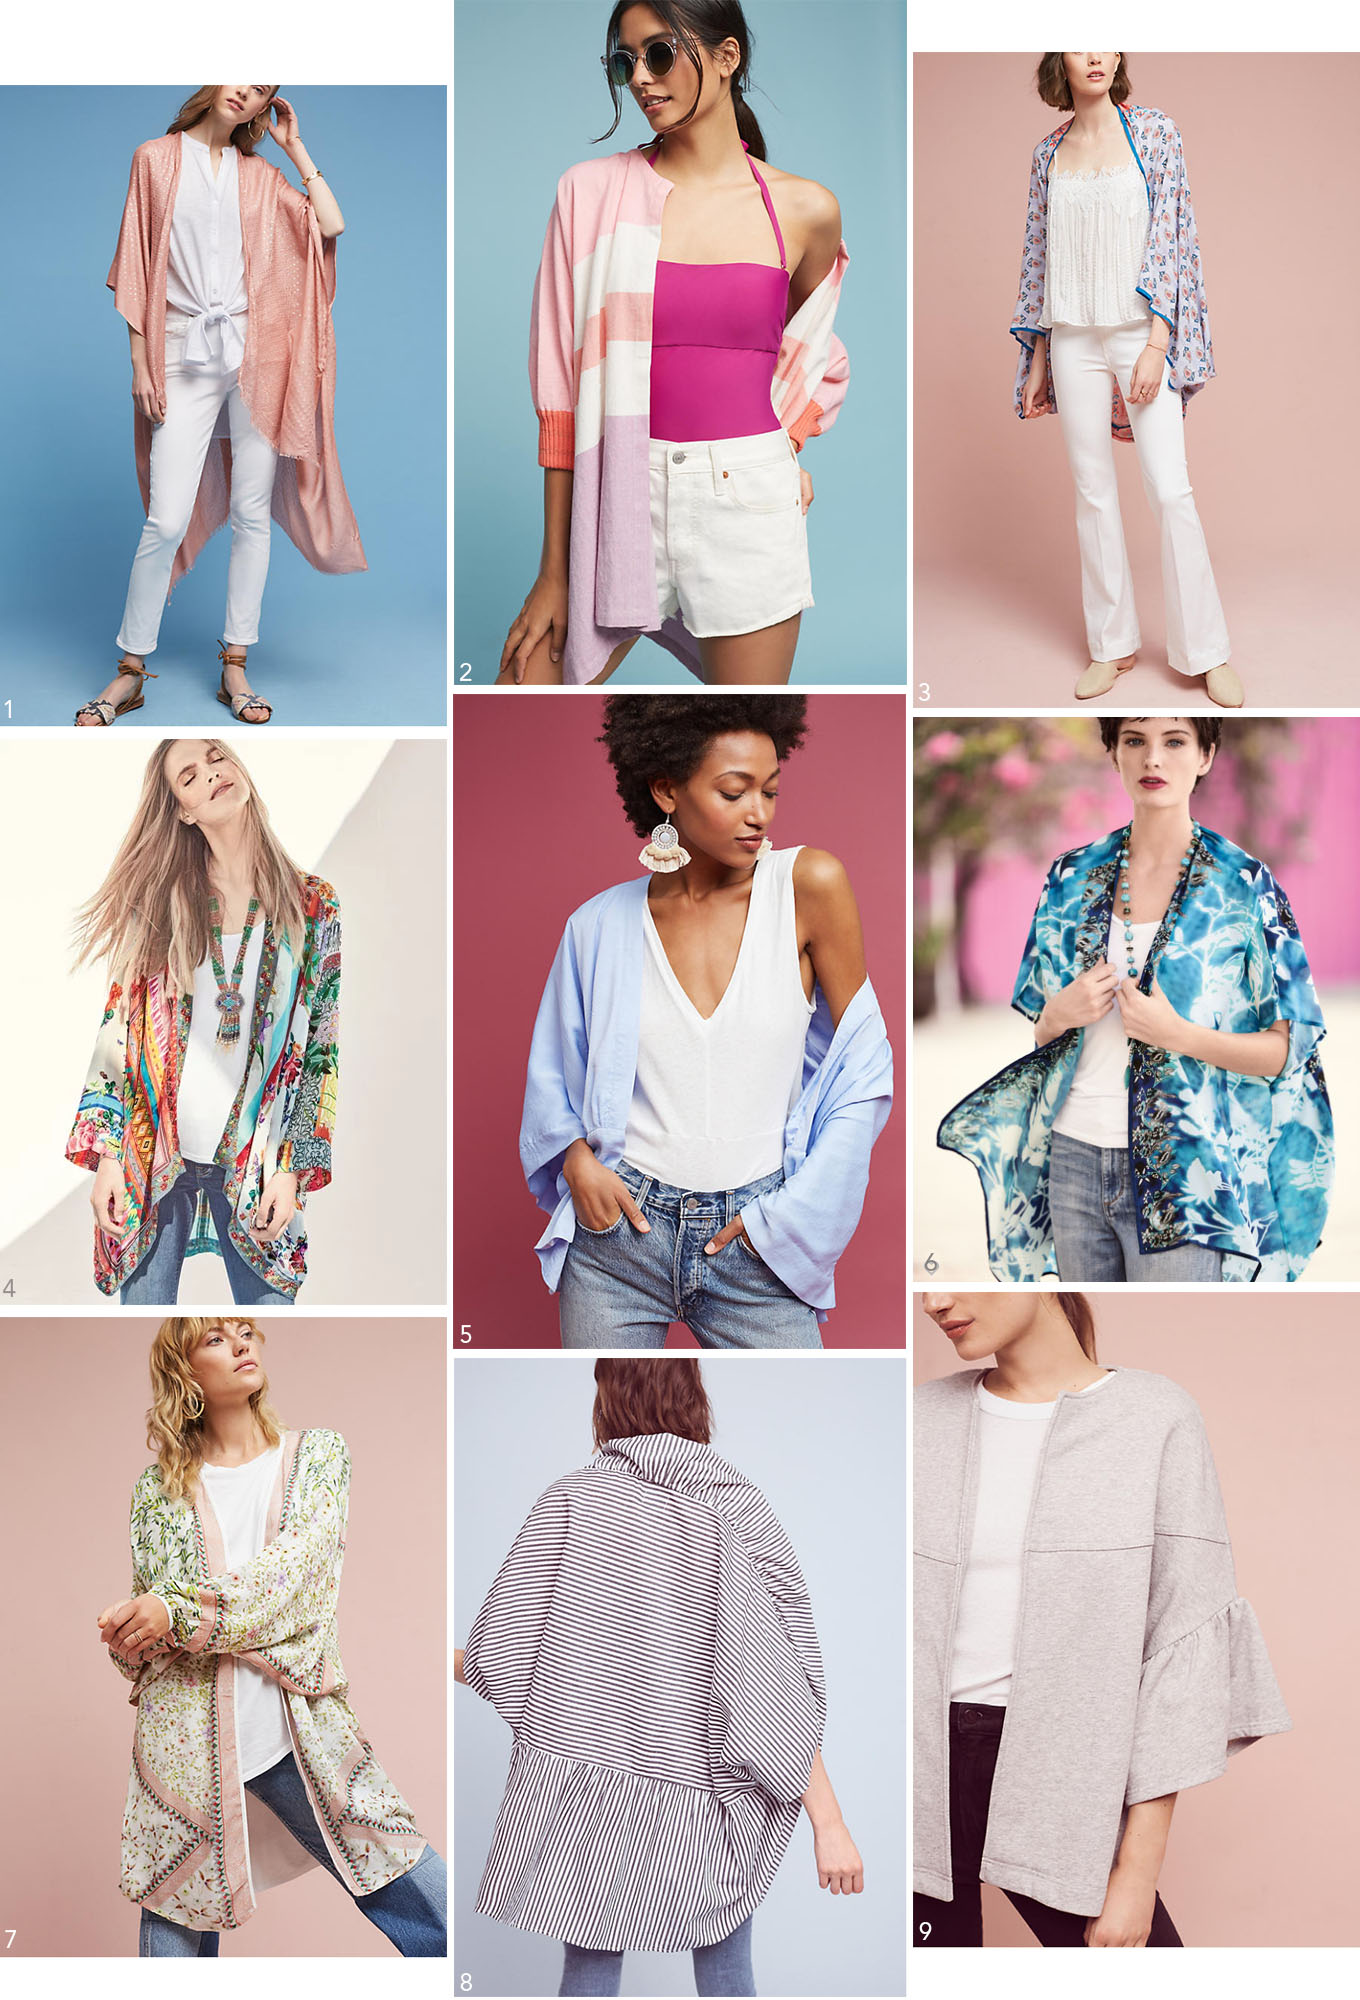 Ridgely Brode discovered Kimonos are not just for sleepwear and finds several she would like and shares them on her blog, Ridgely's Radar.